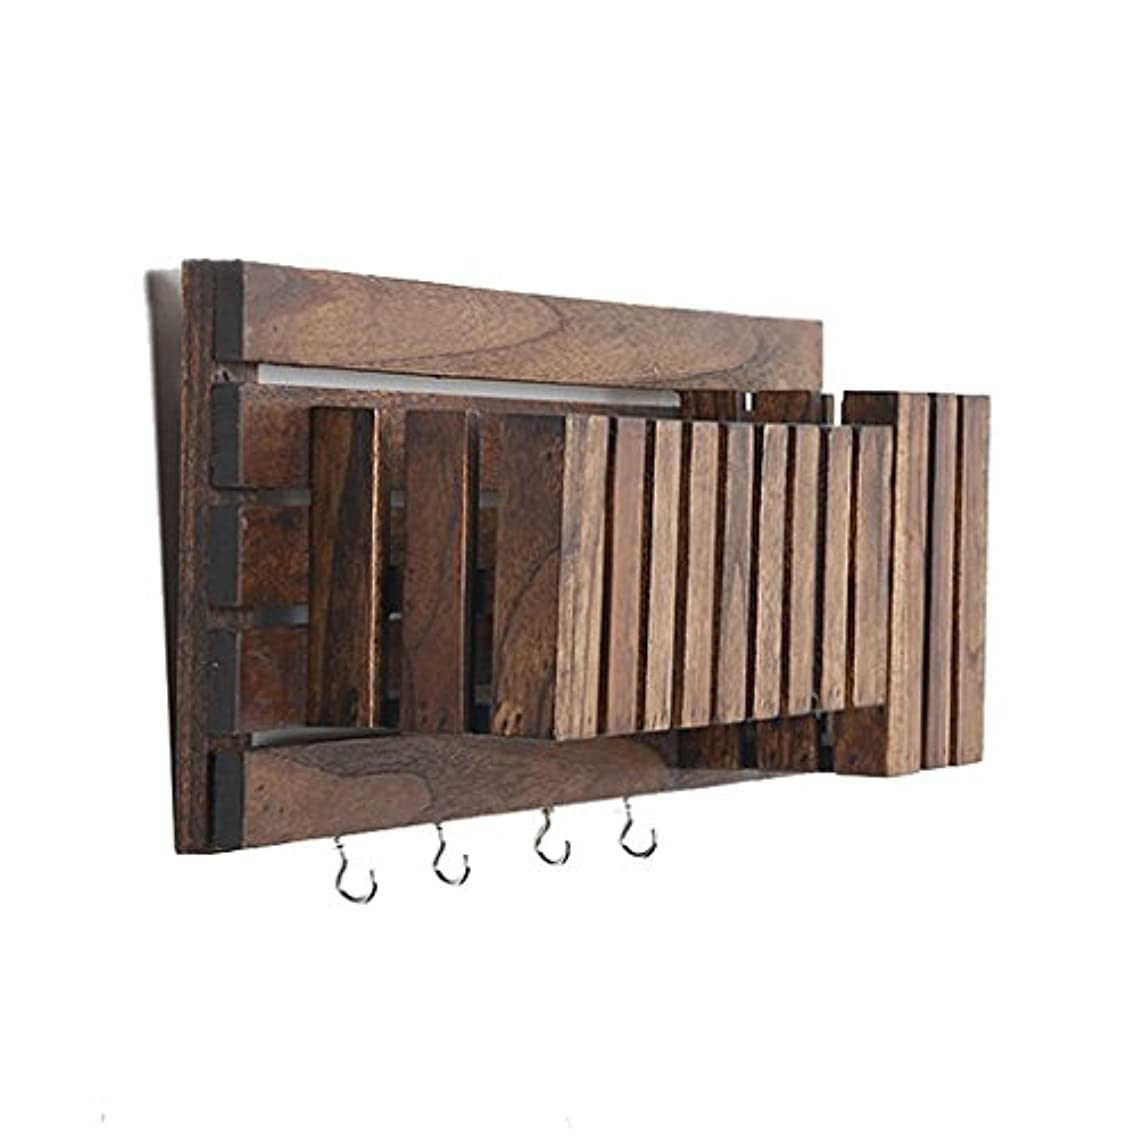 YXQ Shelves Wall-mounted Partition Vintage Solid Wood Wall Shelf Loft Cube Shelf Wall Hanging Clapboard As Bookshelf Storage Rack Floating Unit Frame Creative Industrial Style Wall Decorations Design